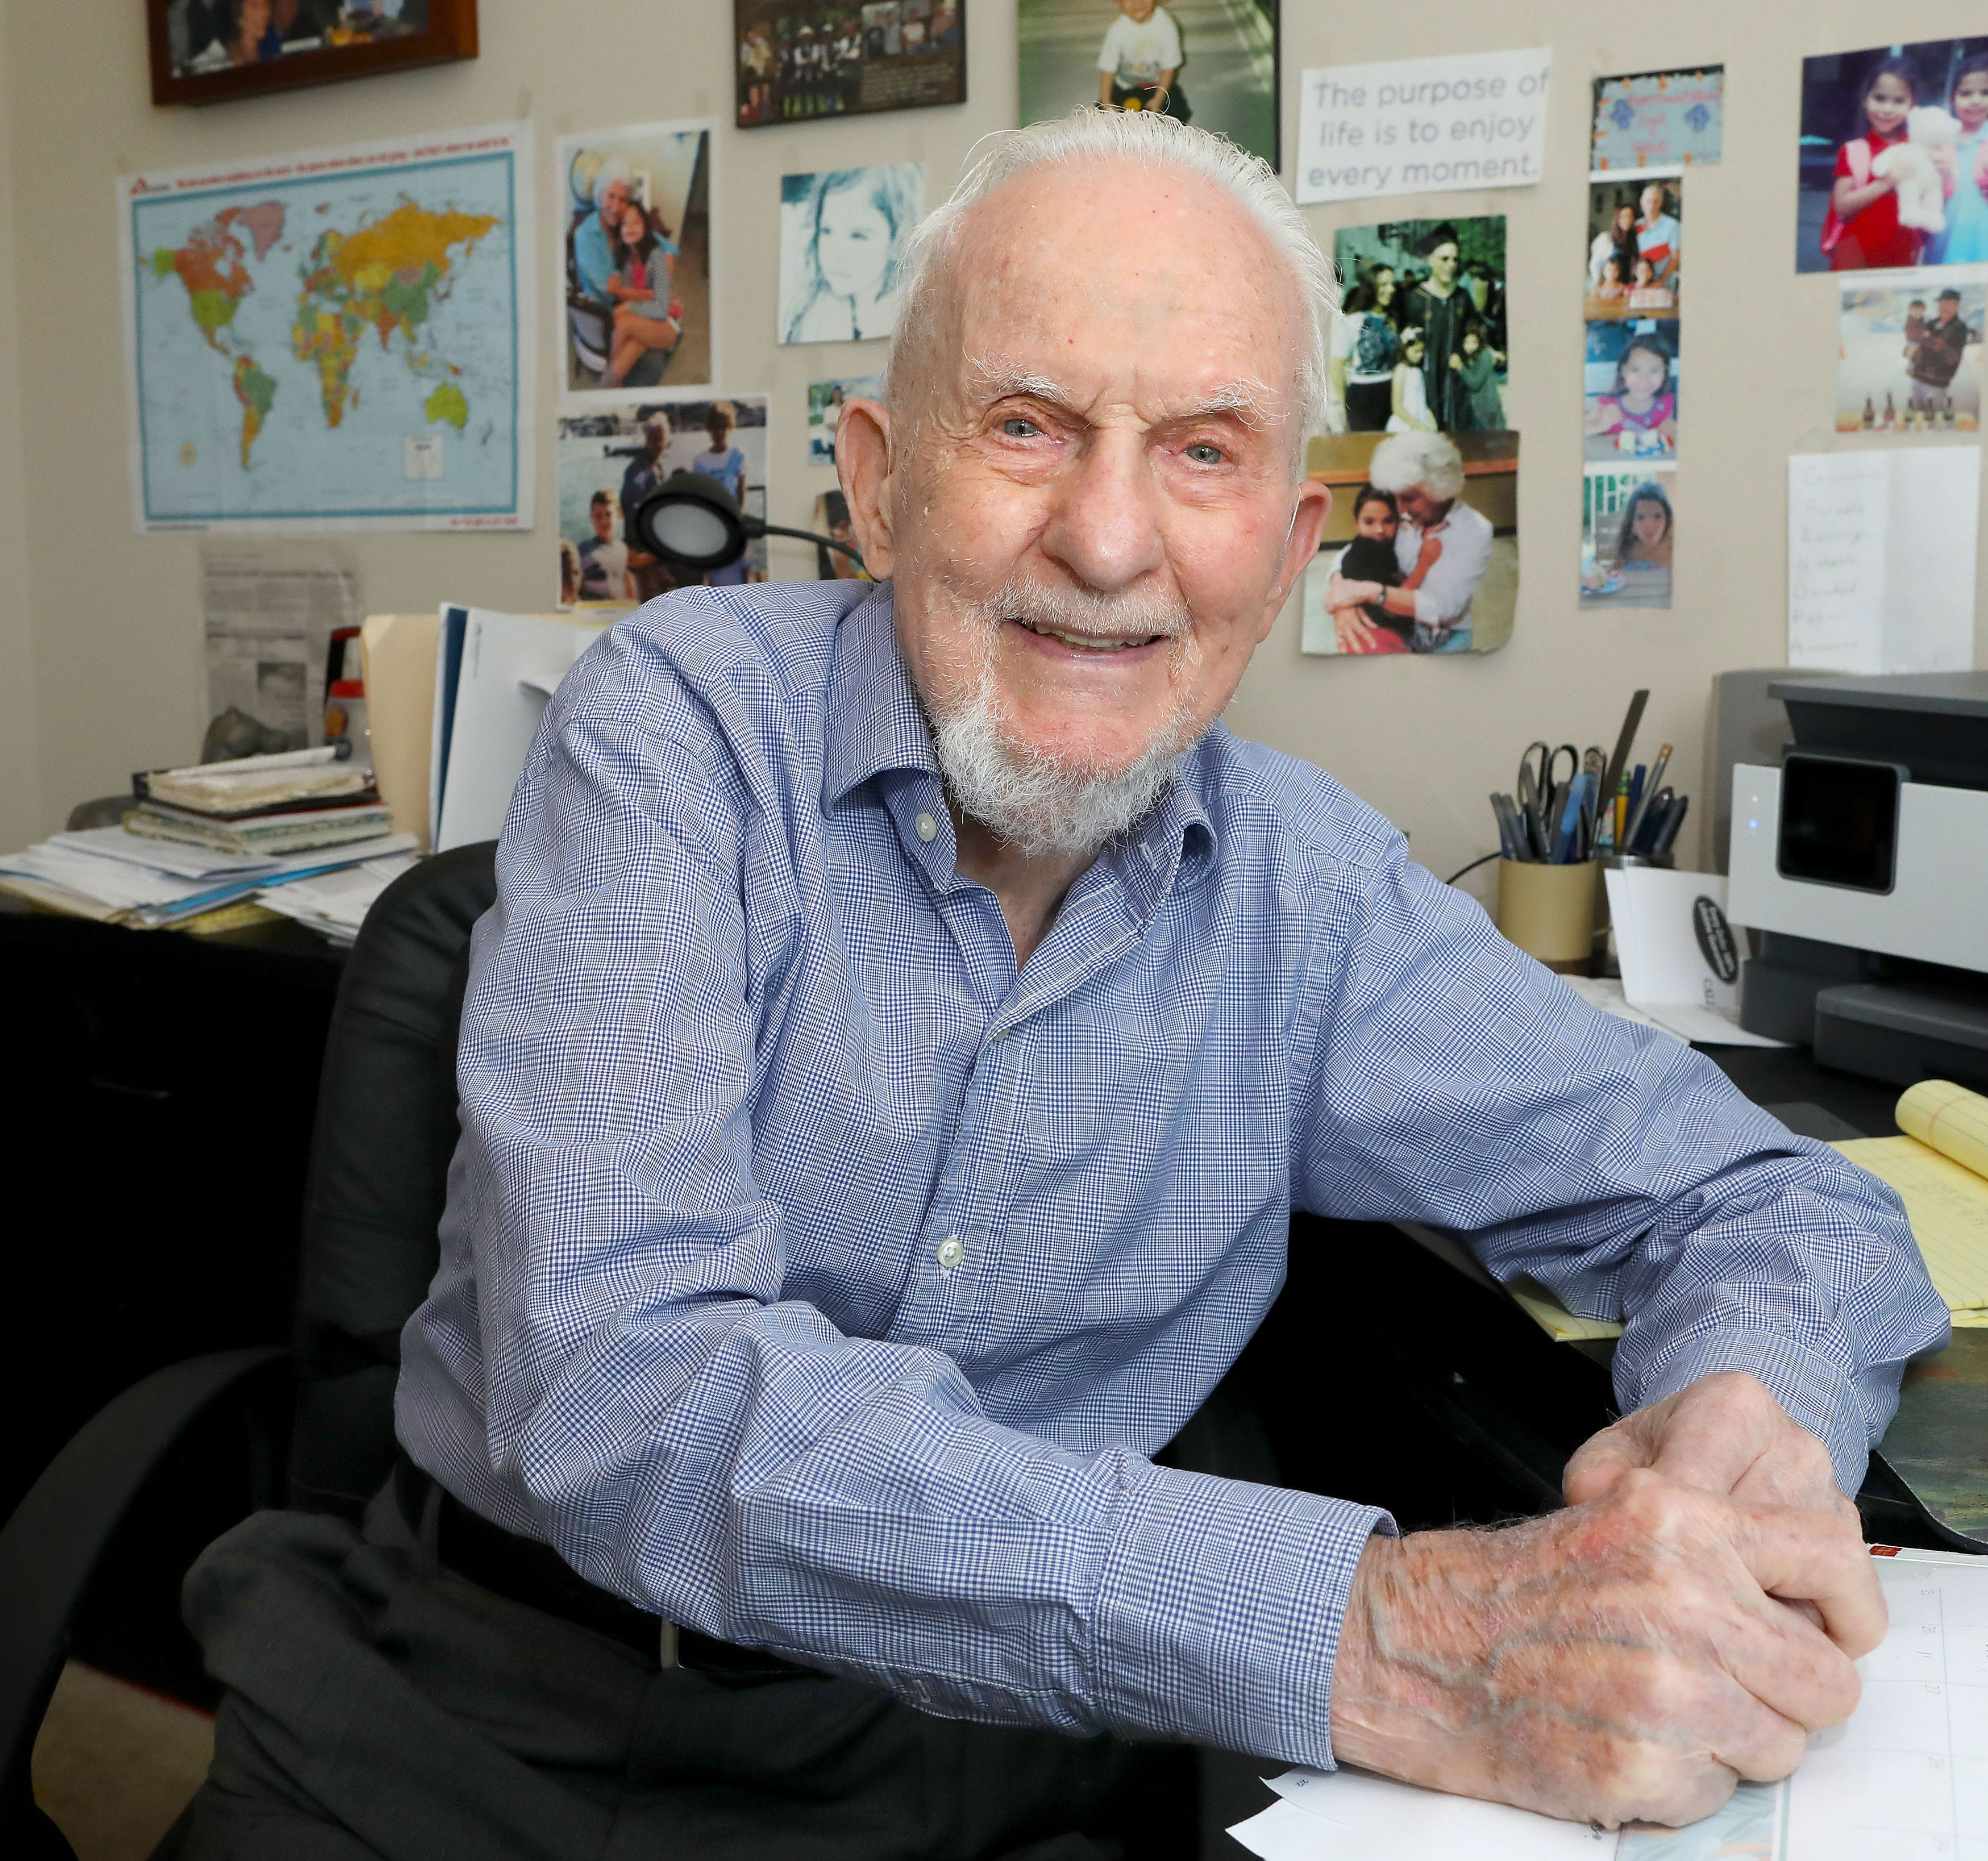 Gainesville s Laurence Jaffe, 98, is producing his first movie, about miracles. He says he lived through his own.